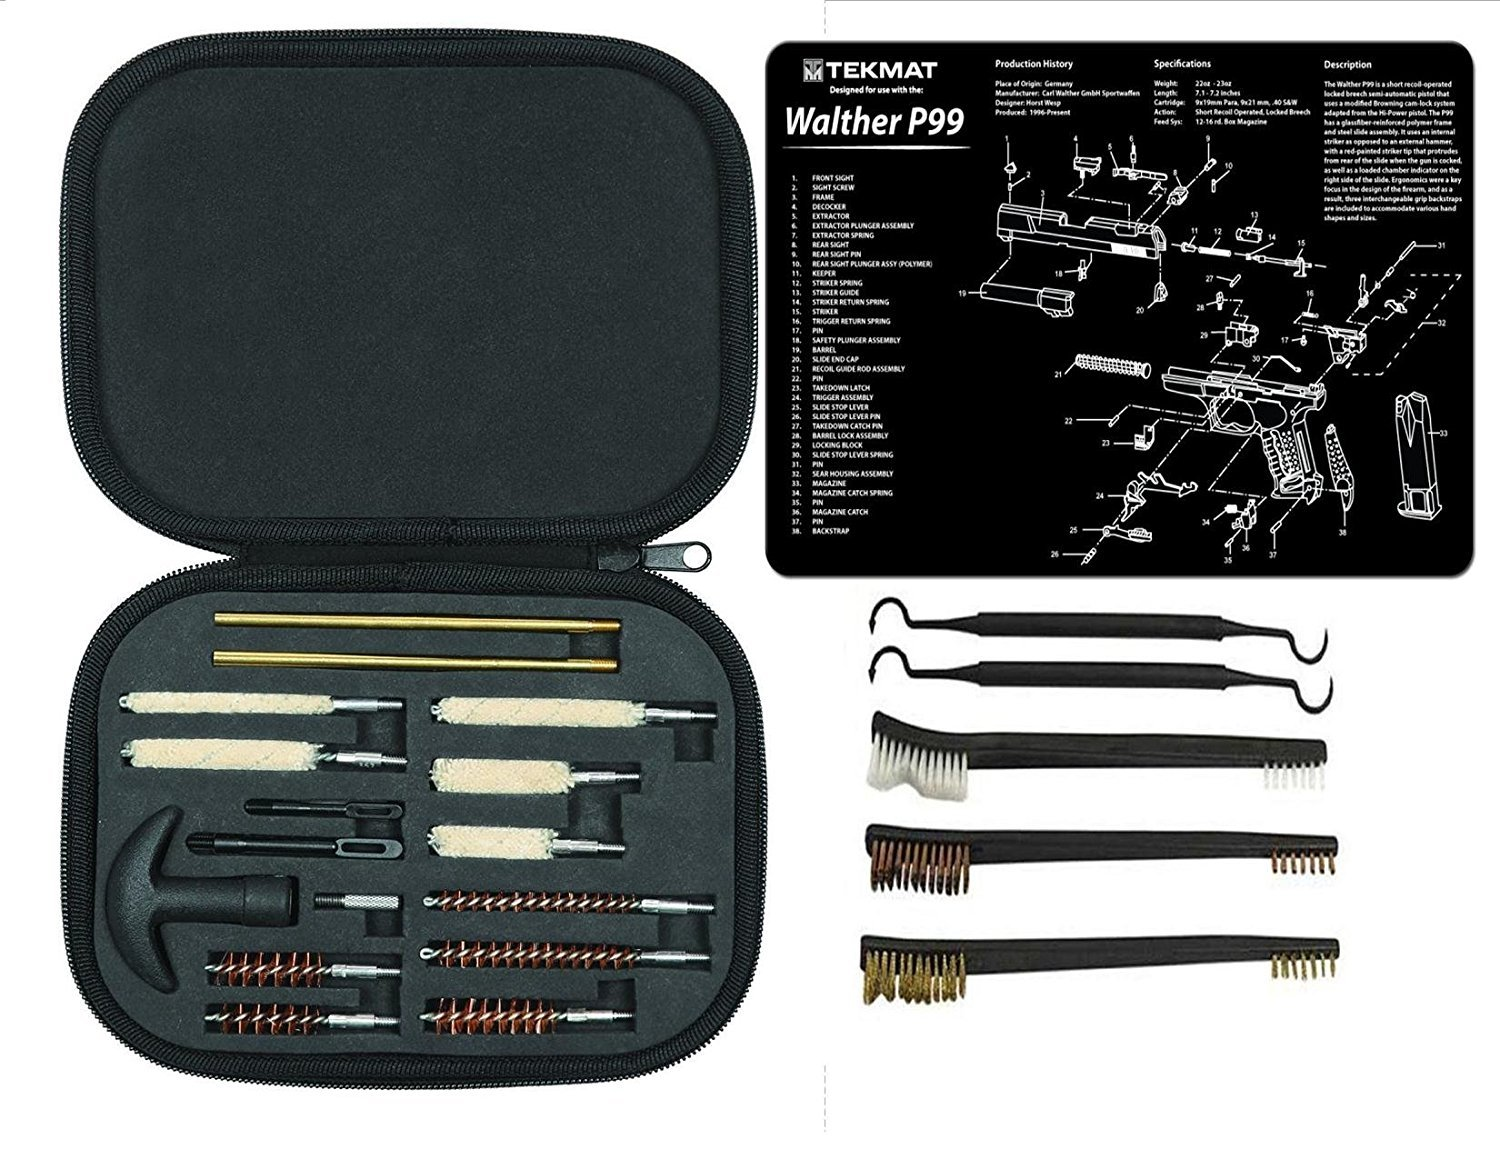 SIS E-Store Walther P99 TekMat with Range Warrior 21 PC